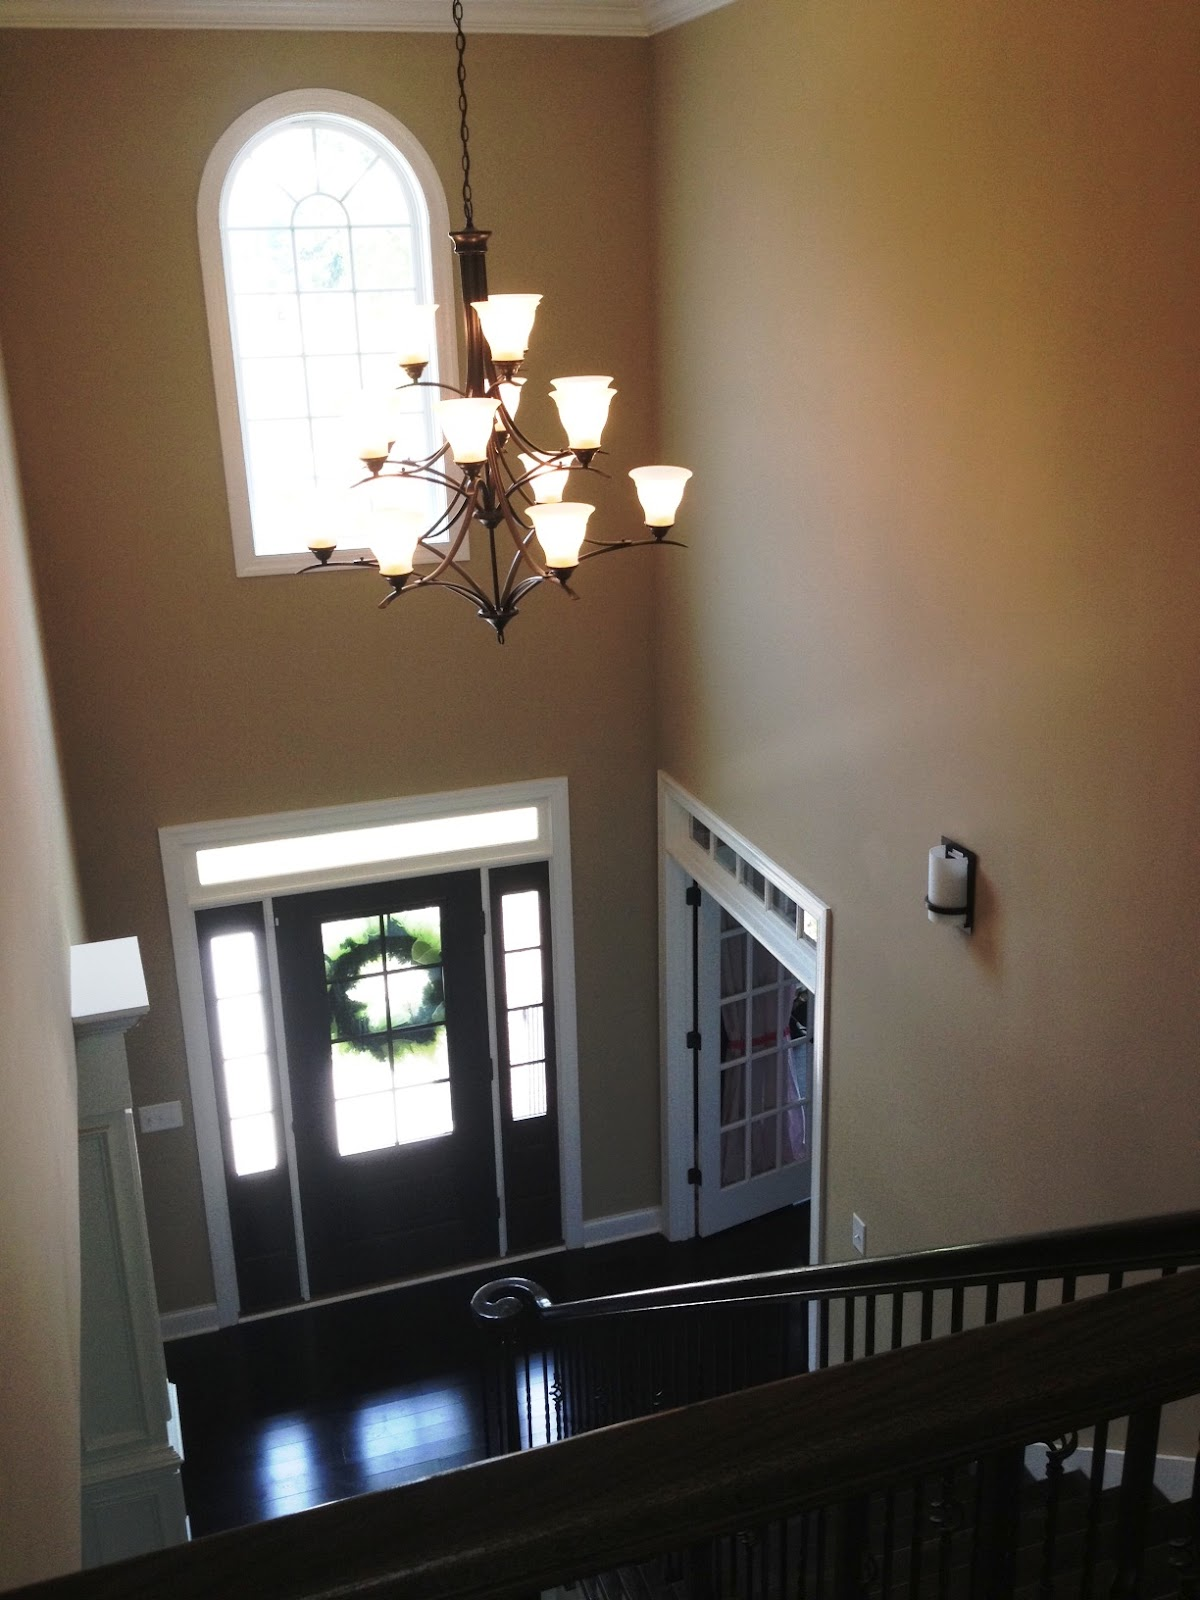 2 story foyer chandelier 2 story foyer with chandelier for 2 story foyer chandelier